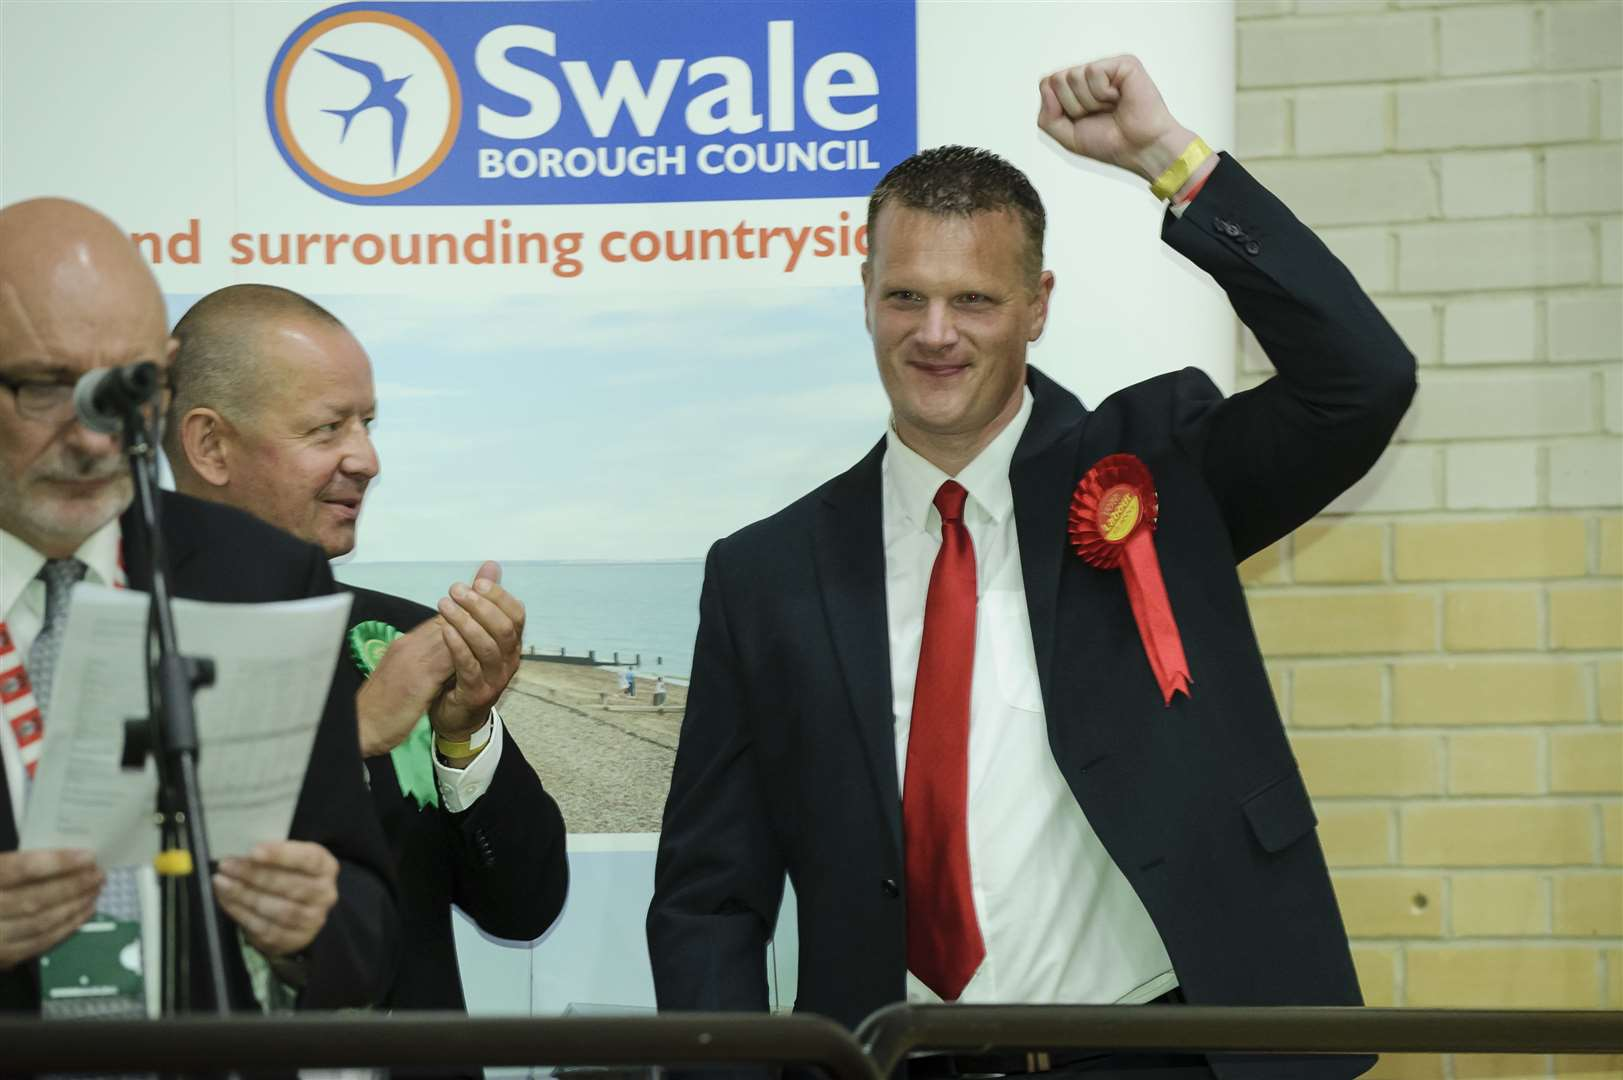 Mike Rolfe (Lab) raises his hand to supporters as Labour comes in second place in Sittingbourne and Sheppey.The Sittingbourne and Sheppey constituency count for the 2017 General Election, at the Swallows Leisure Centre, SittingbournePicture: Andy Payton FM4804171 (15547554)